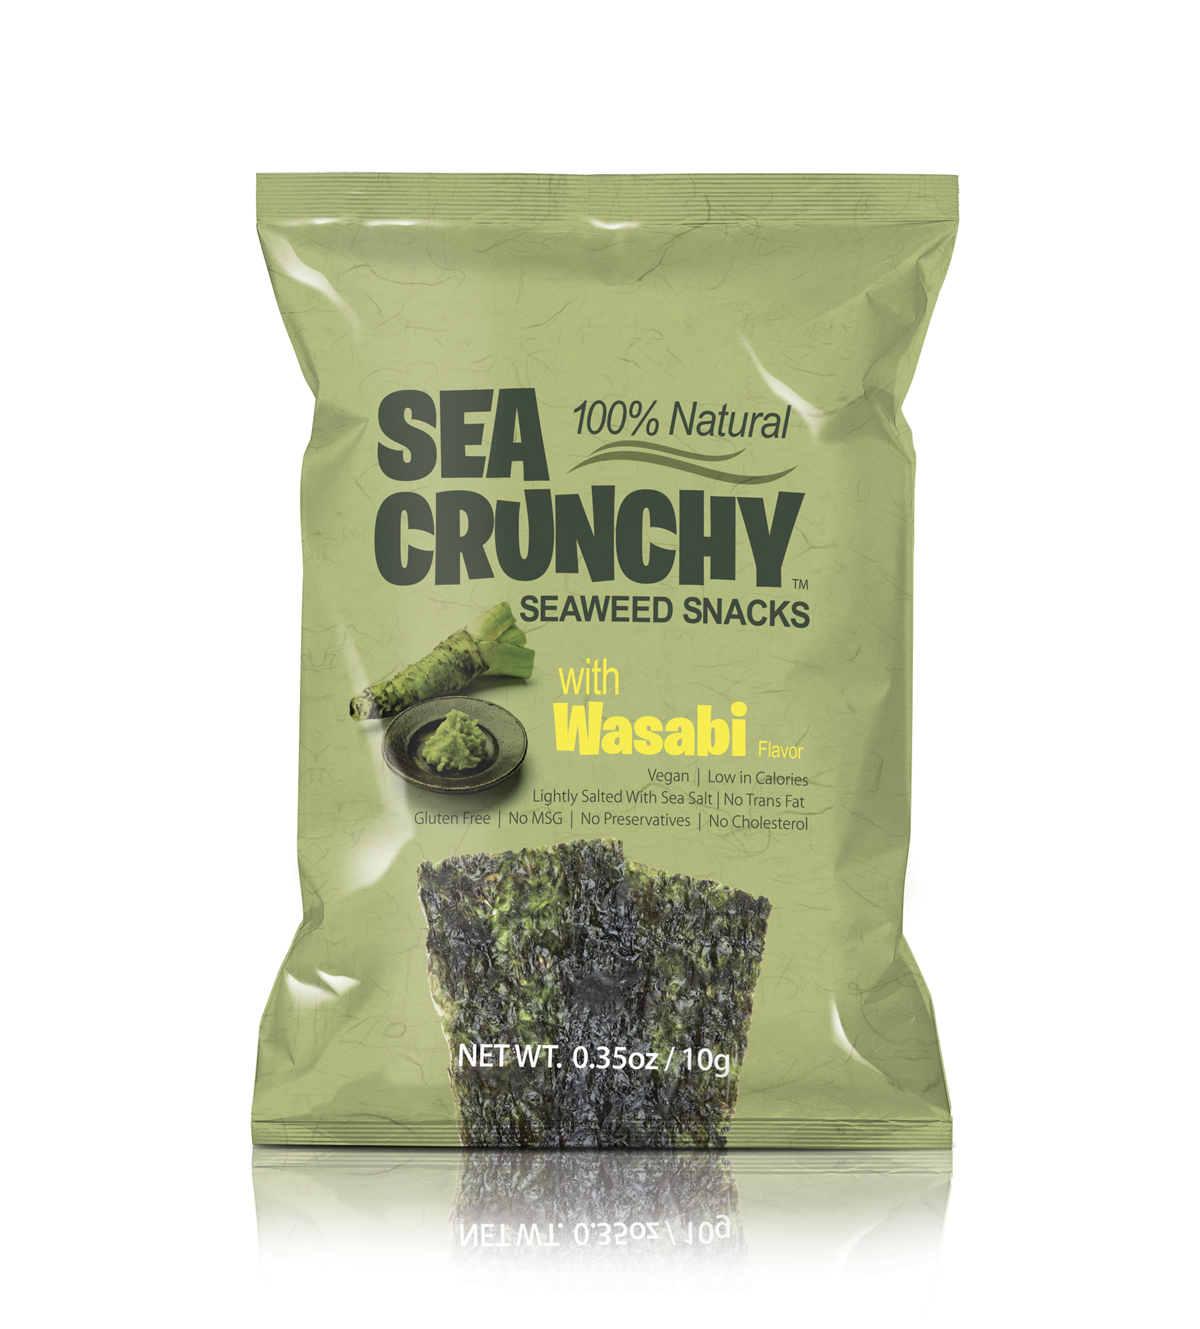 SEA CRUNCHY Seaweed Snacks with wasabi root image.